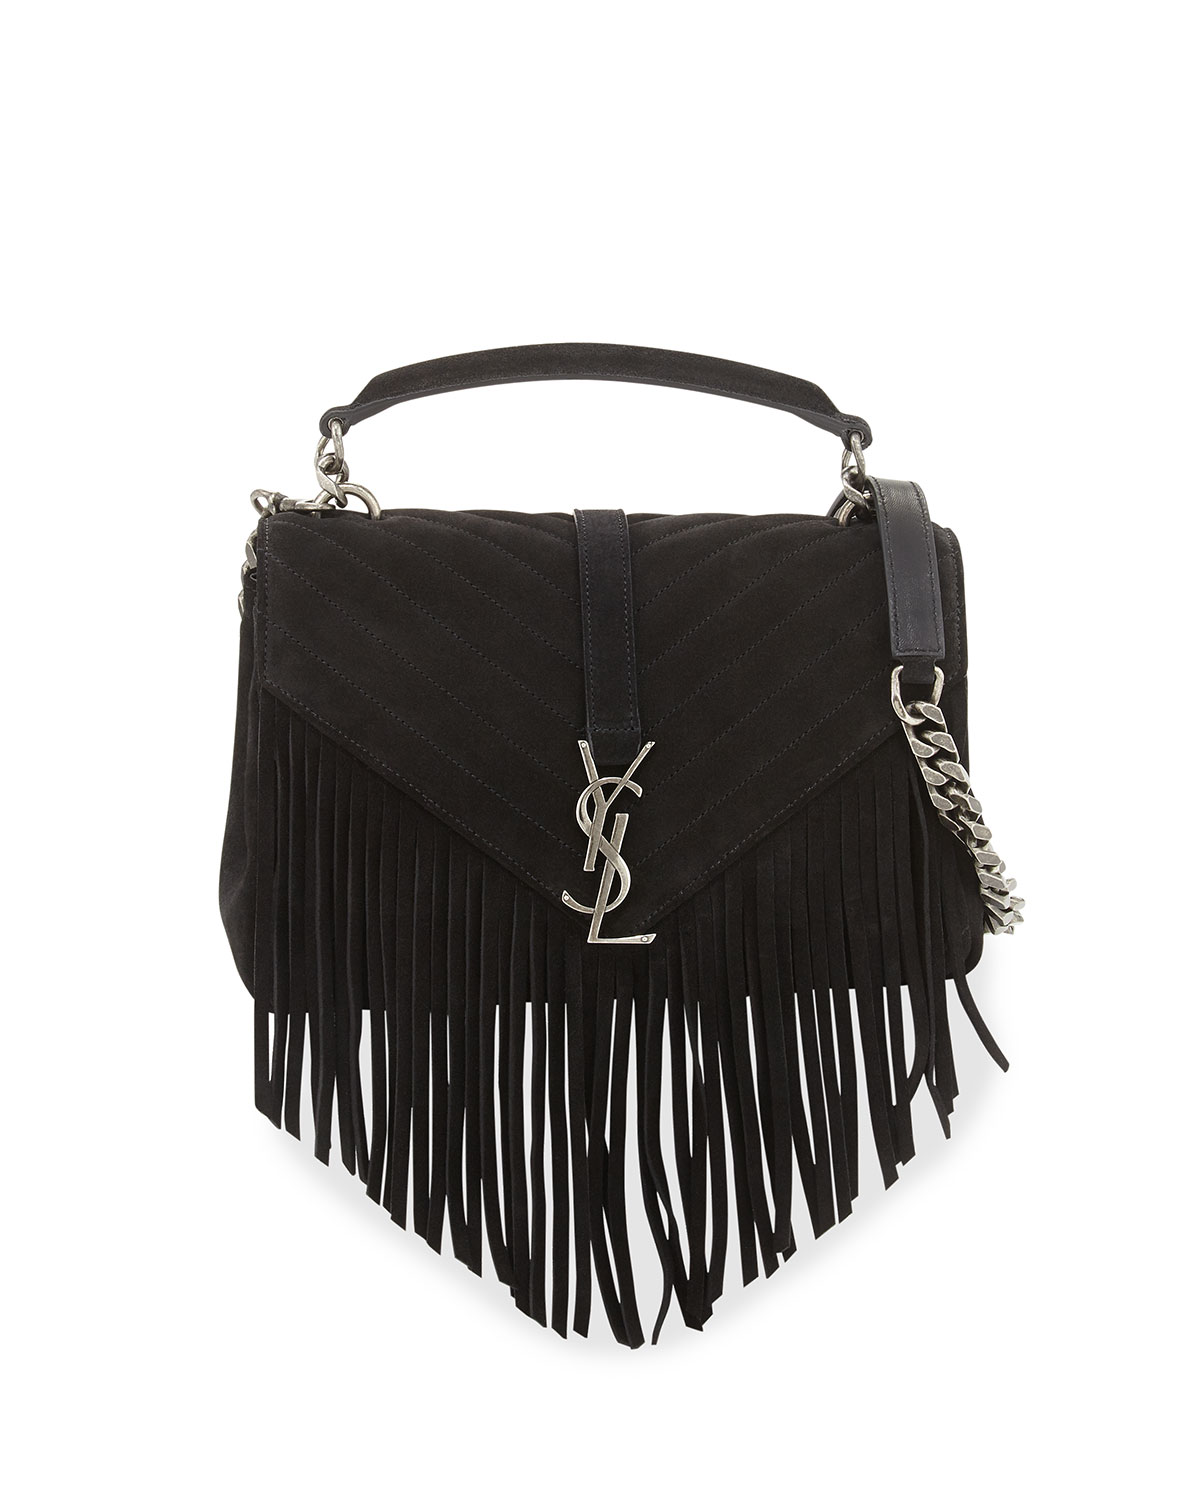 c81a49358ae Saint Laurent Monogram YSL Fringe College Suede Shoulder Bag ...